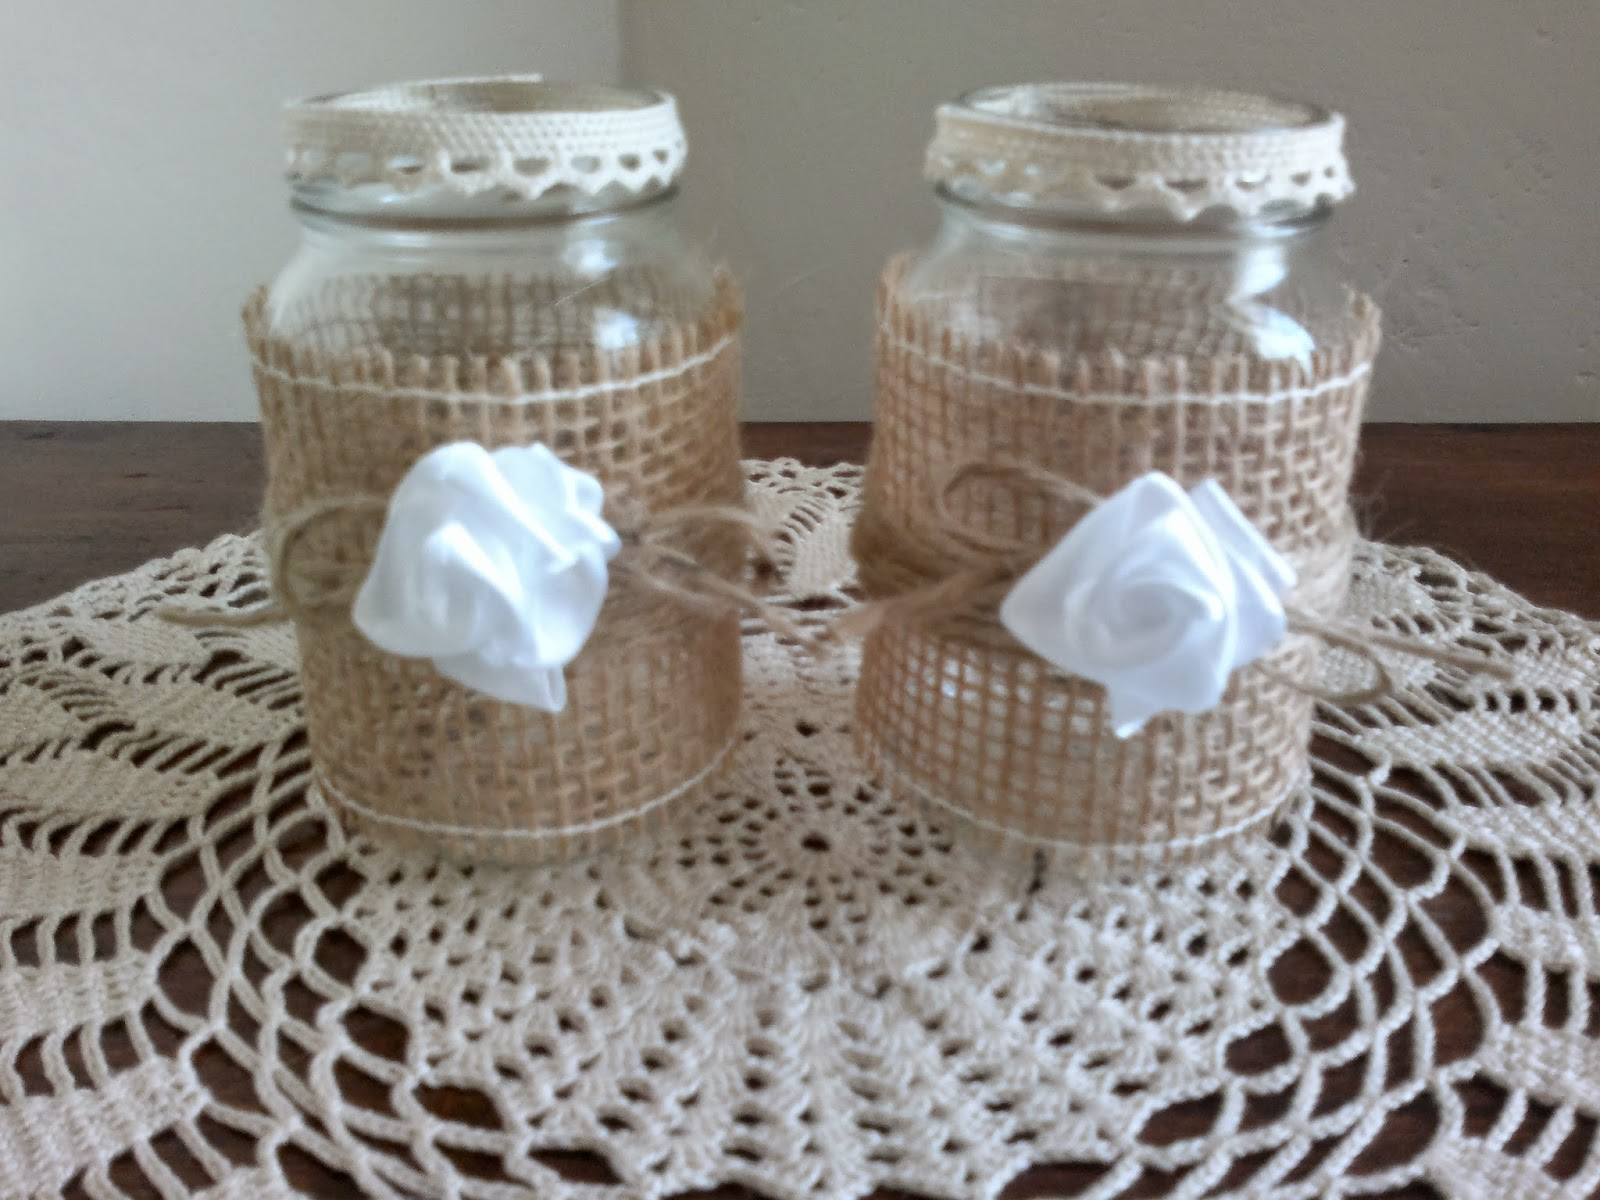 L 39 angolo di flo vasetti di vetro decorati glass jars decorated - Vasetti di vetro decorati ...